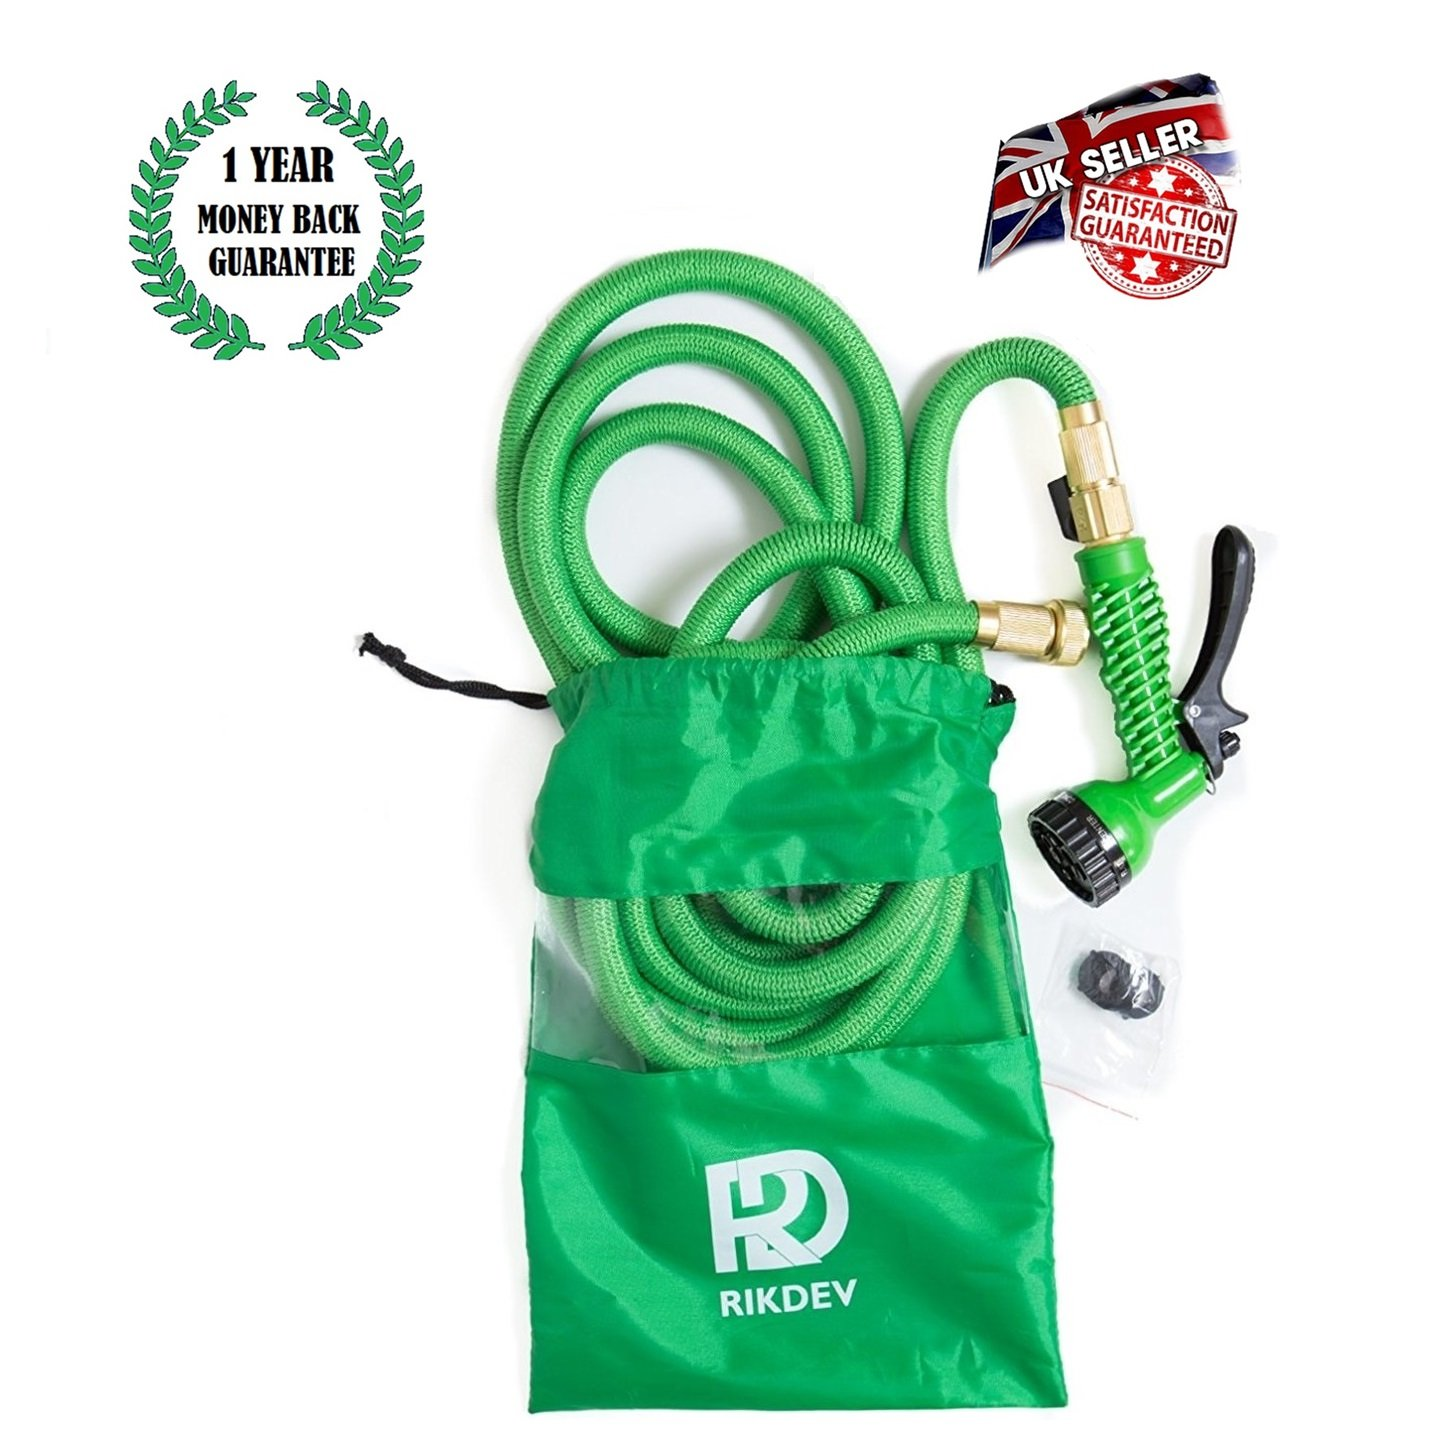 Garden Hose, Rikdev 75ft Expandable Hose Pipe Green -- New Stronger Double Latex Inner Tube & NEWER Anti Kink Material - 7 Pattern Spray Gun with Anti Leakage SCREW on Brass Fittings and Shut off Valve - Includes a FREE Custom Drawstring Bag for Easy